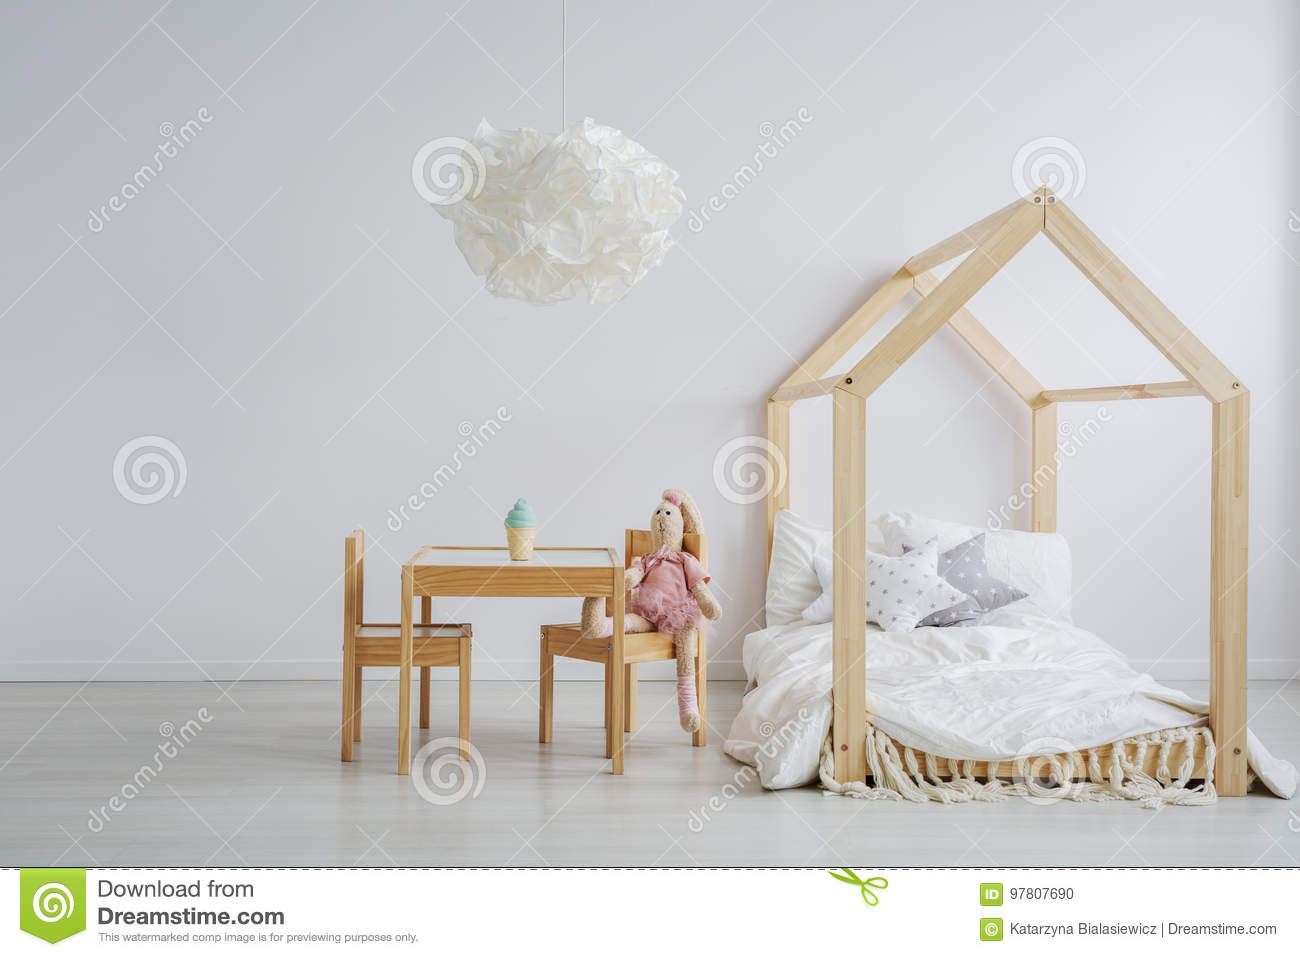 Elegant child table and bed